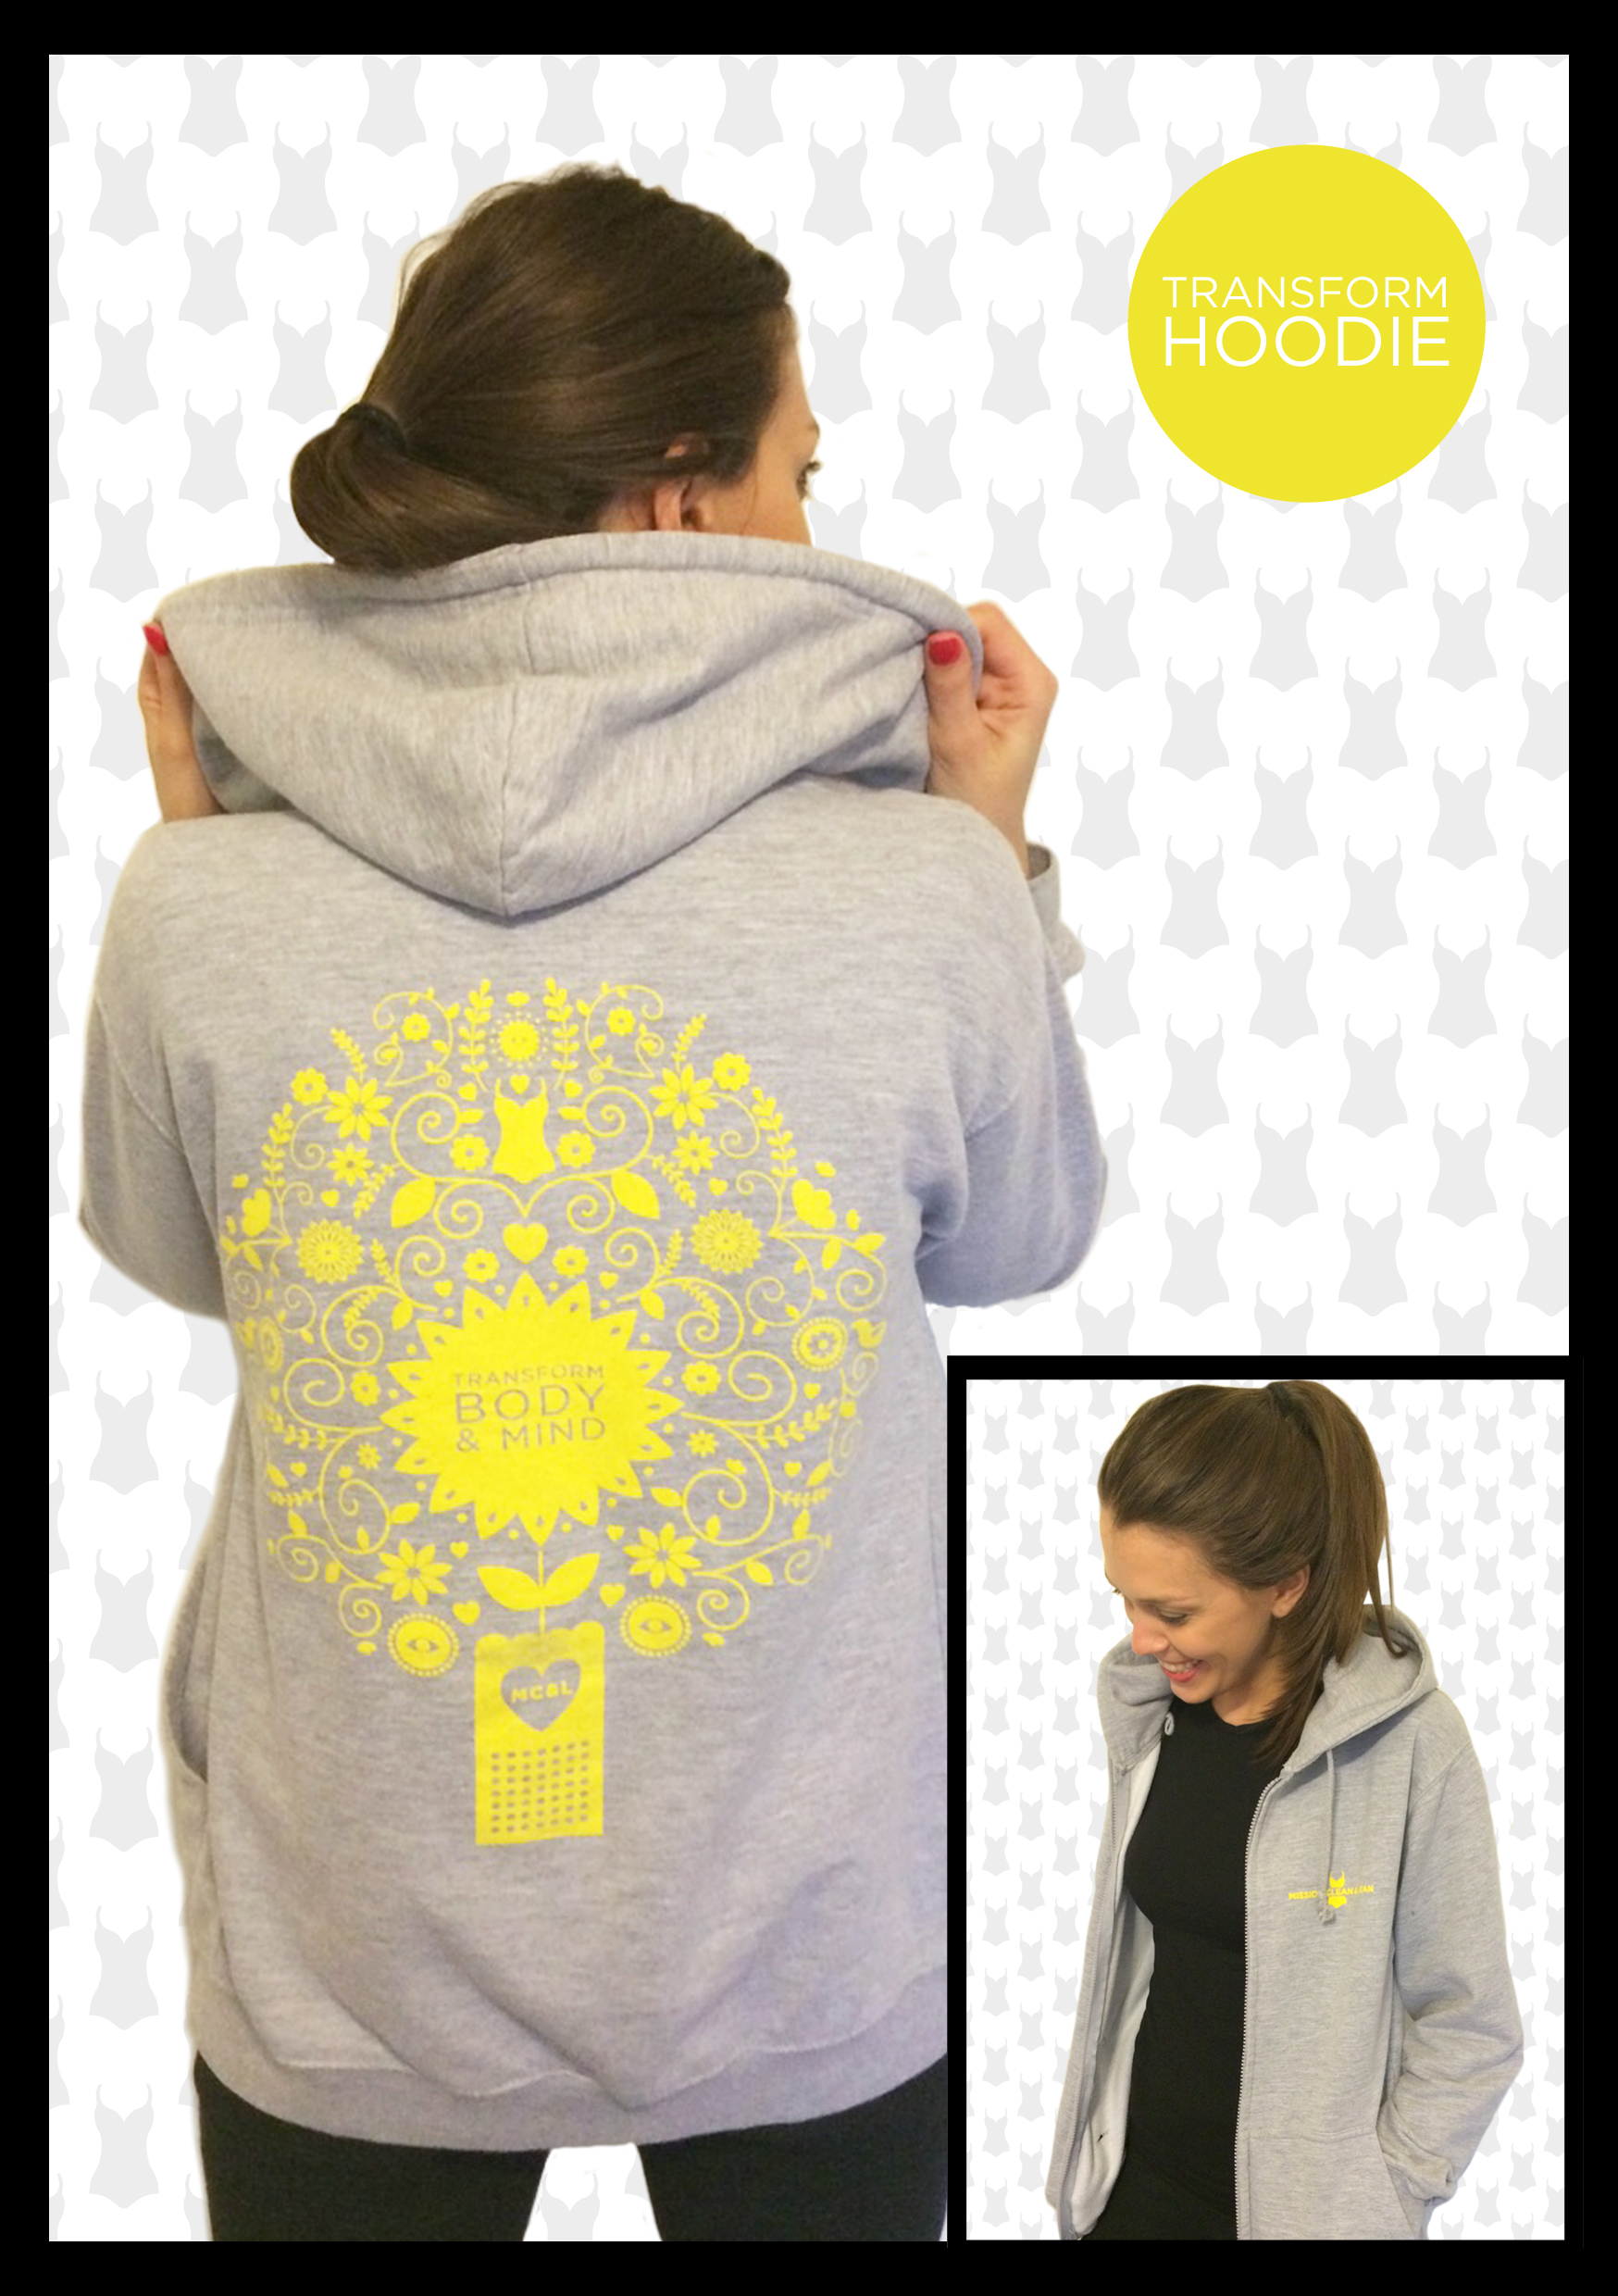 'Transform Body & Mind' in this stylish soft grey marl zip up hoodie with beautiful yellow design on the back.Made from80% cotton/20% polyester and washable at 40C it has drawstring hood and split front pouch pocket with yellow logo on the right breast.  Available in size S, M or L (8-10, 12-14 or 16-18)  £35 plus £4.50 p&p